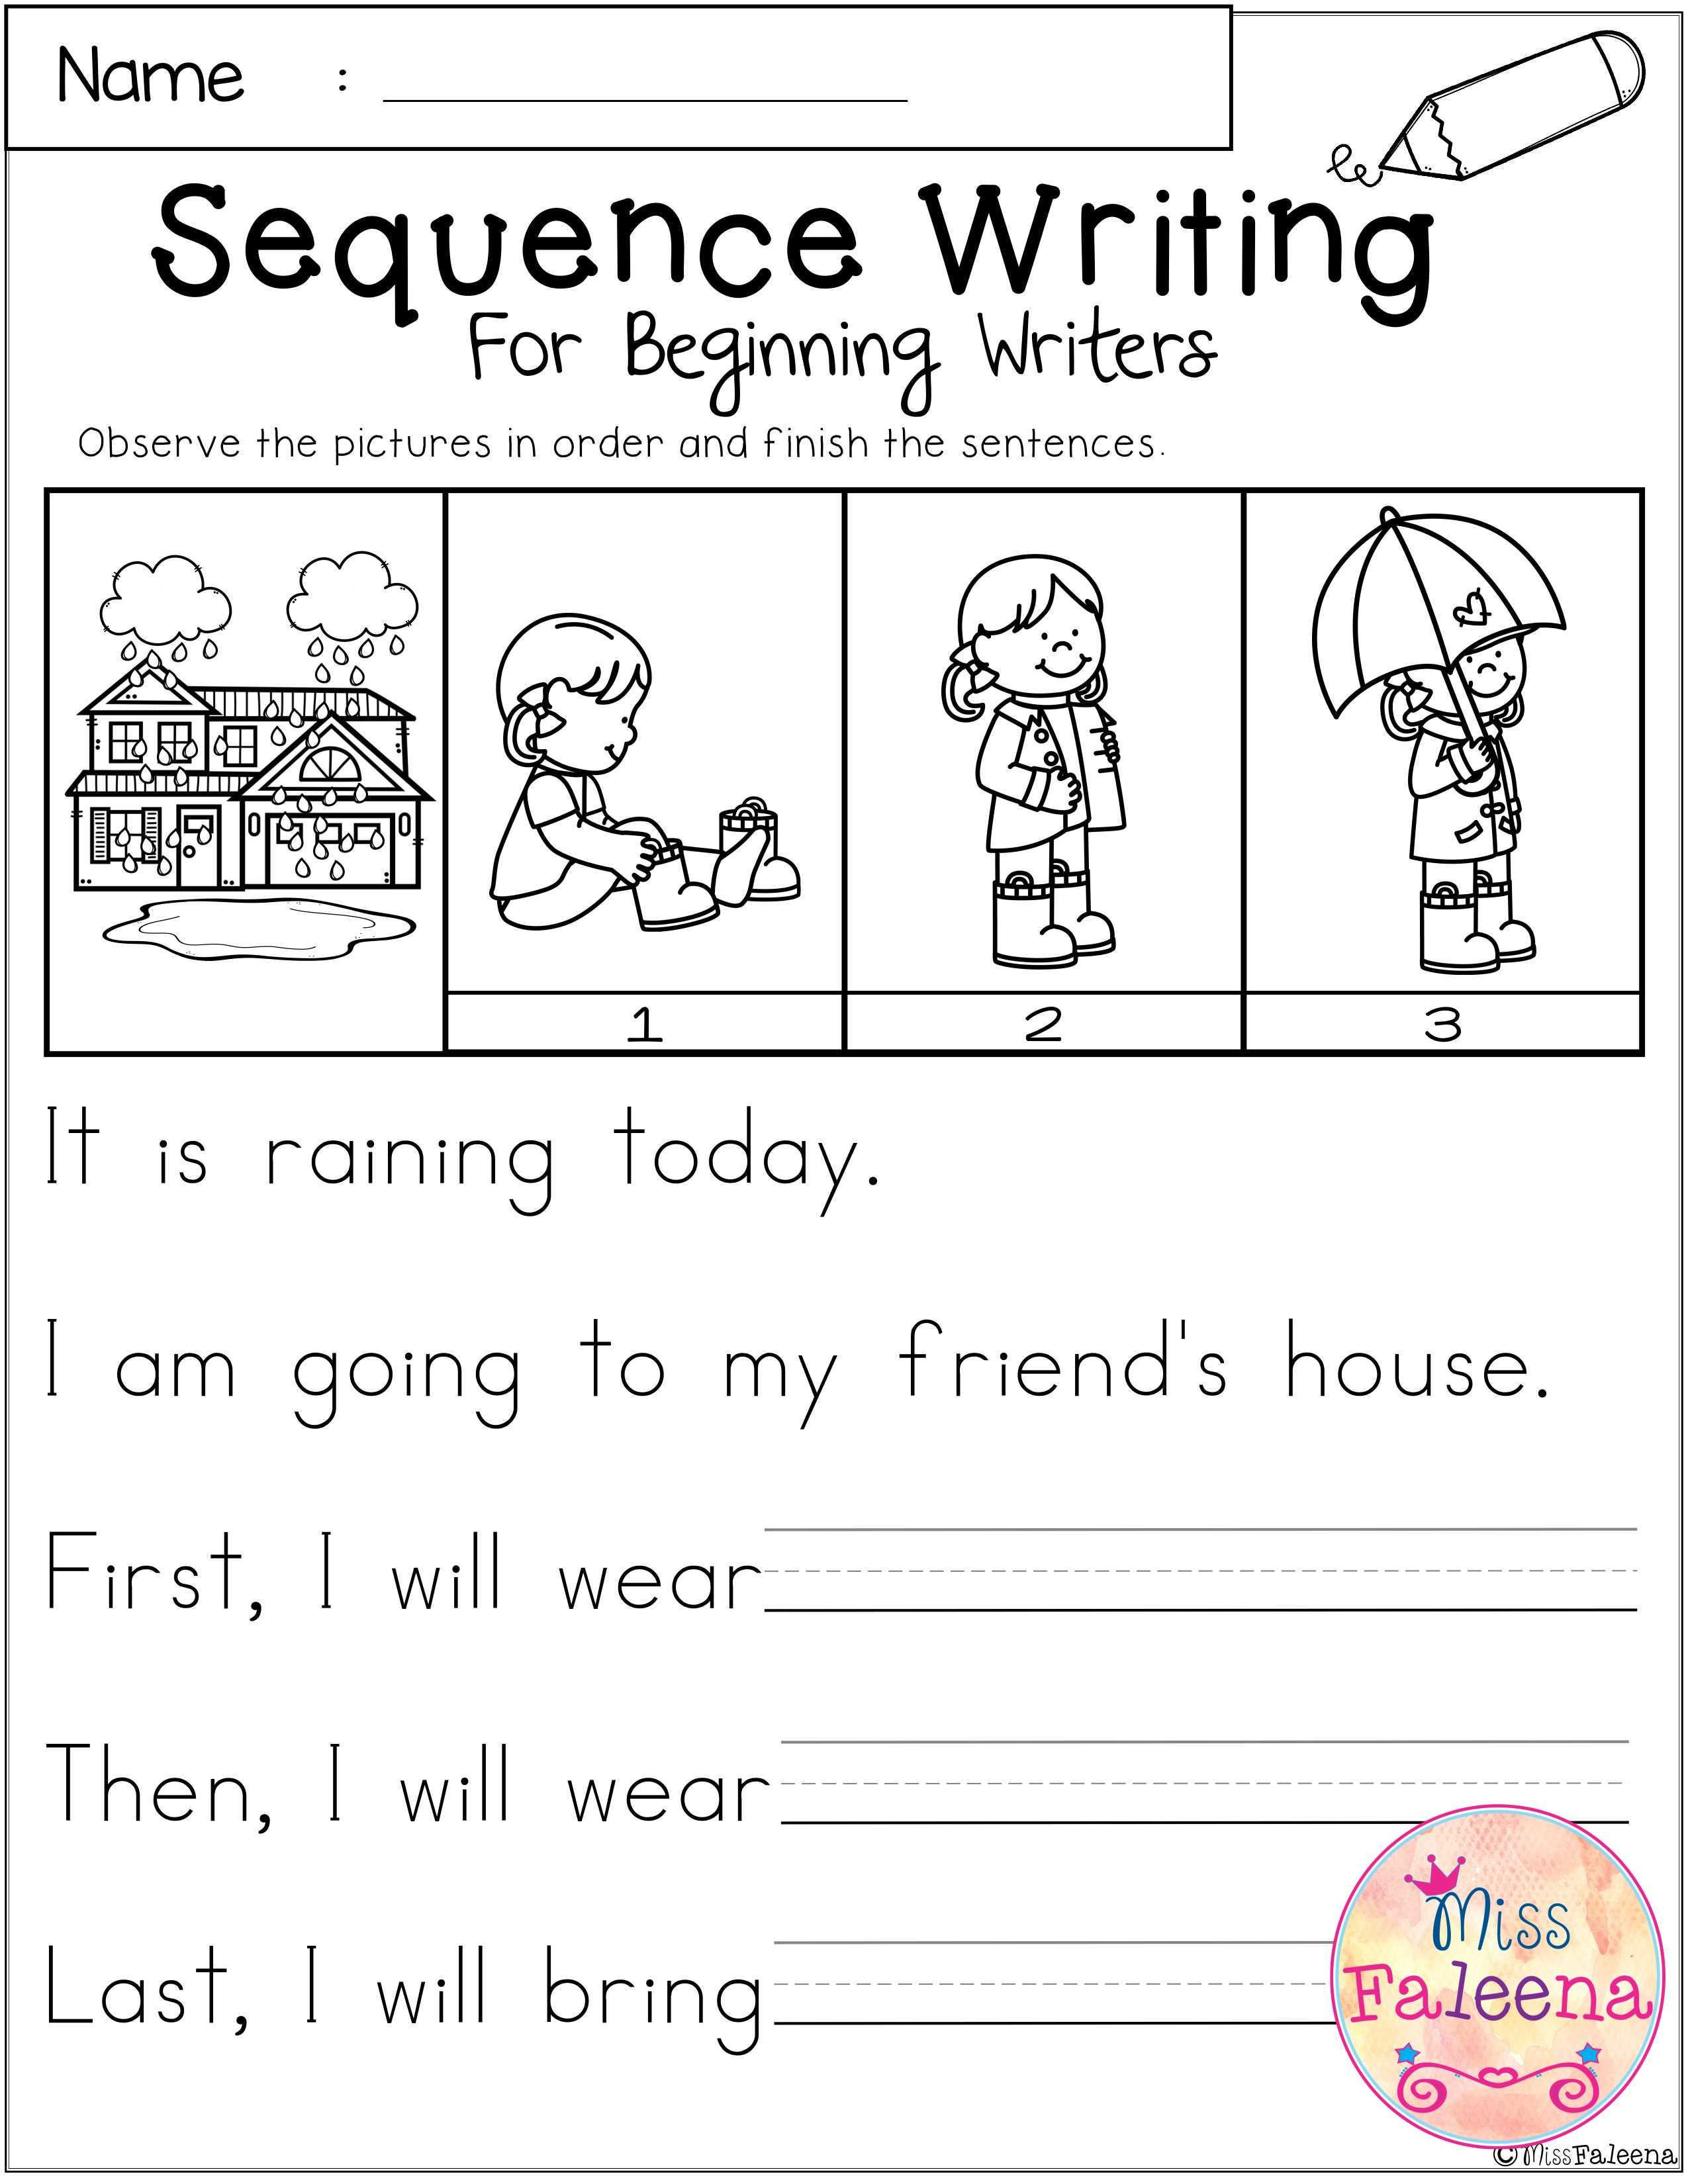 Sequencing Worksheets for Kindergarten March Sequence Writing for Beginning Writers